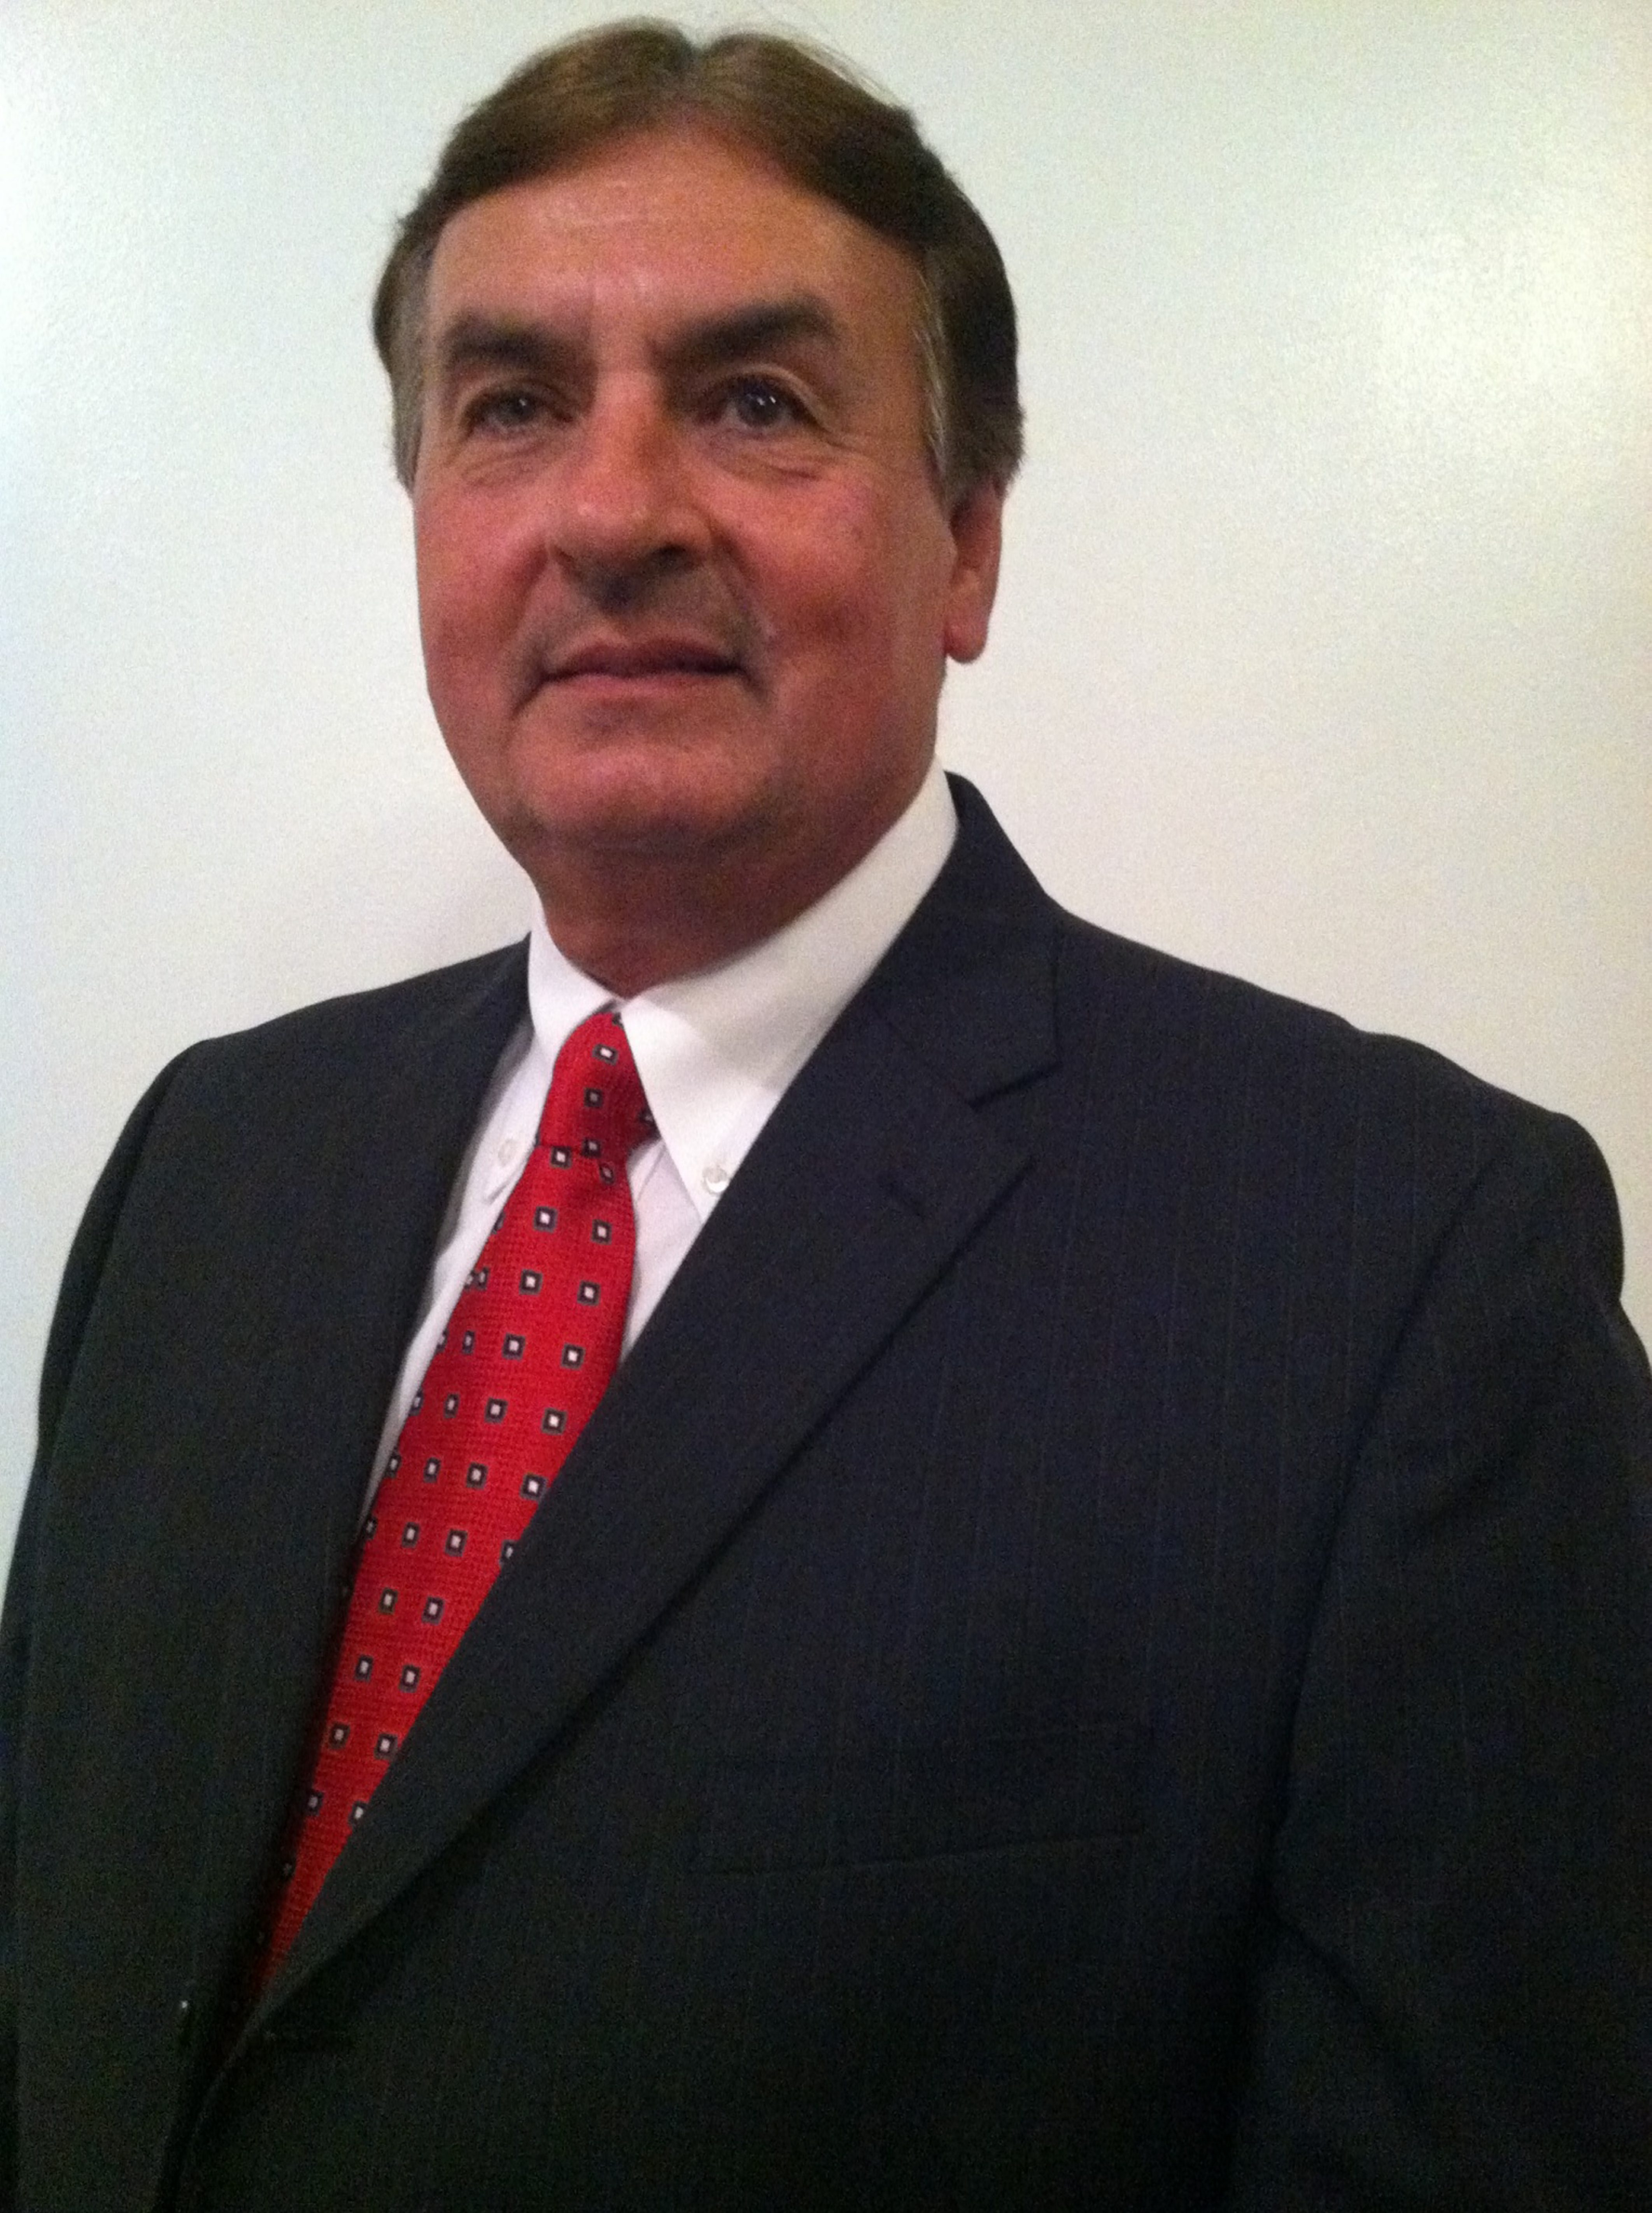 Kevin P. LoCicero, a veteran member of the School Board, is the new president.